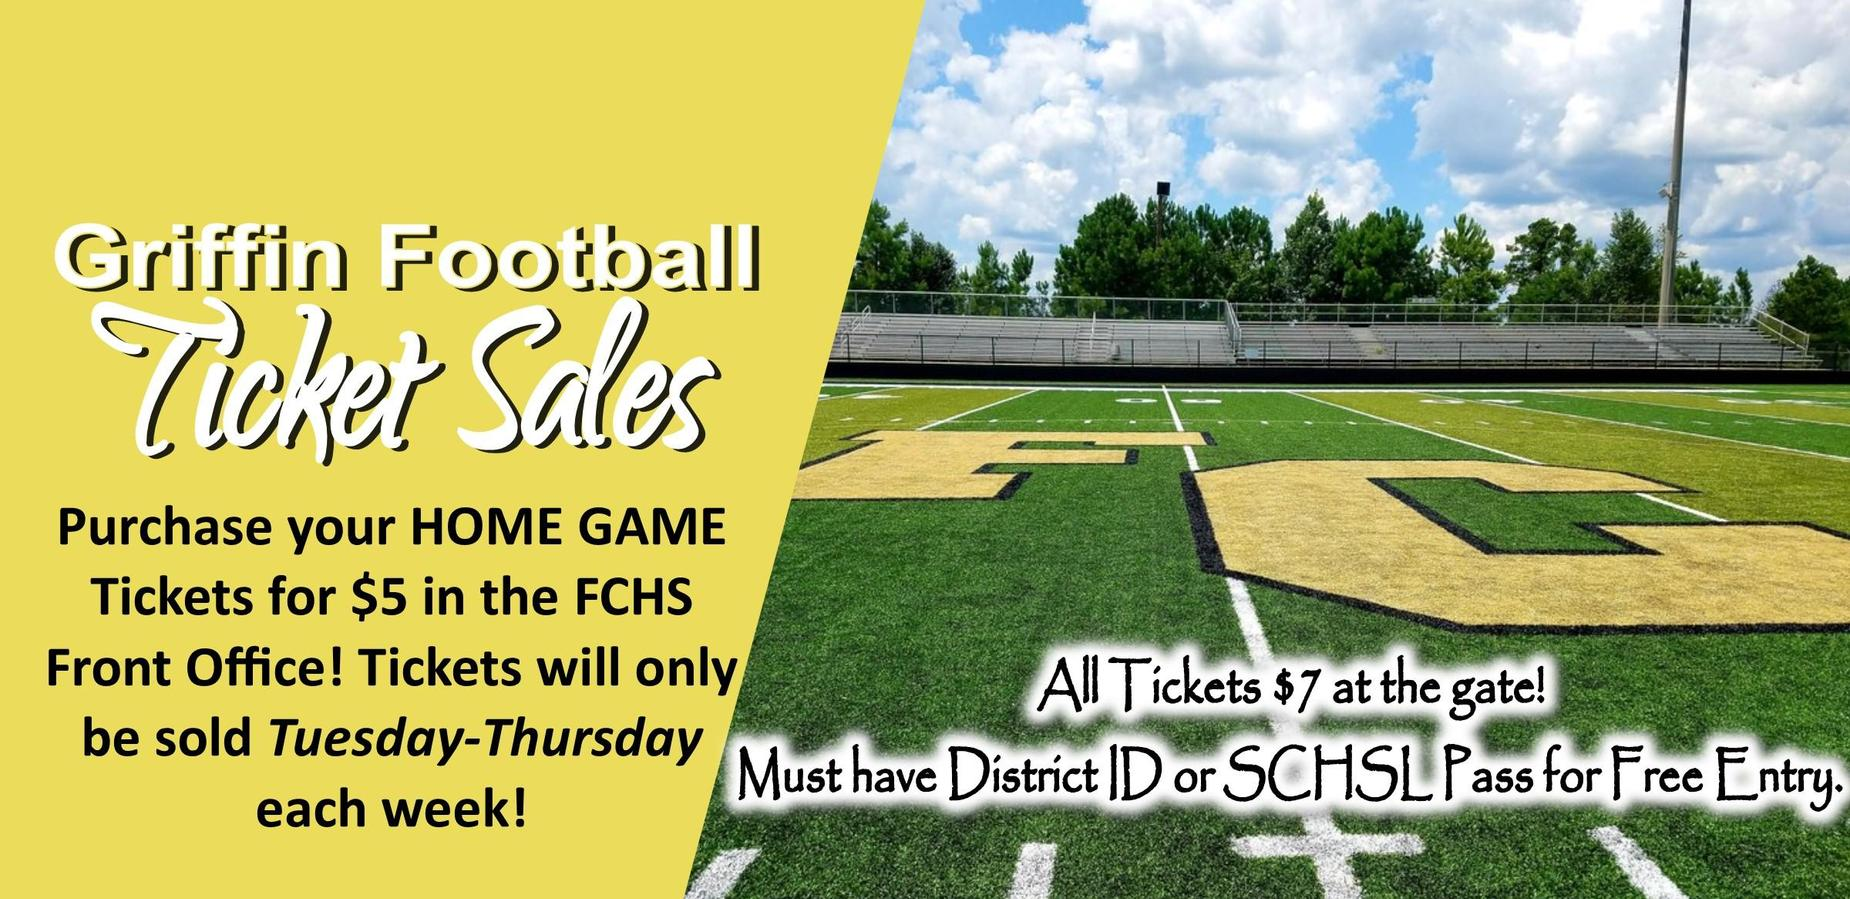 Griffin Football Ticket Sales Purchase your HOME GAME Tickets for $5 in the FCHS Front Office! Tickets will only be sold Tuesday-Thursday each week! All Tickets $7 at the gate! Must have District ID or SCHSL Pass for Free Entry.